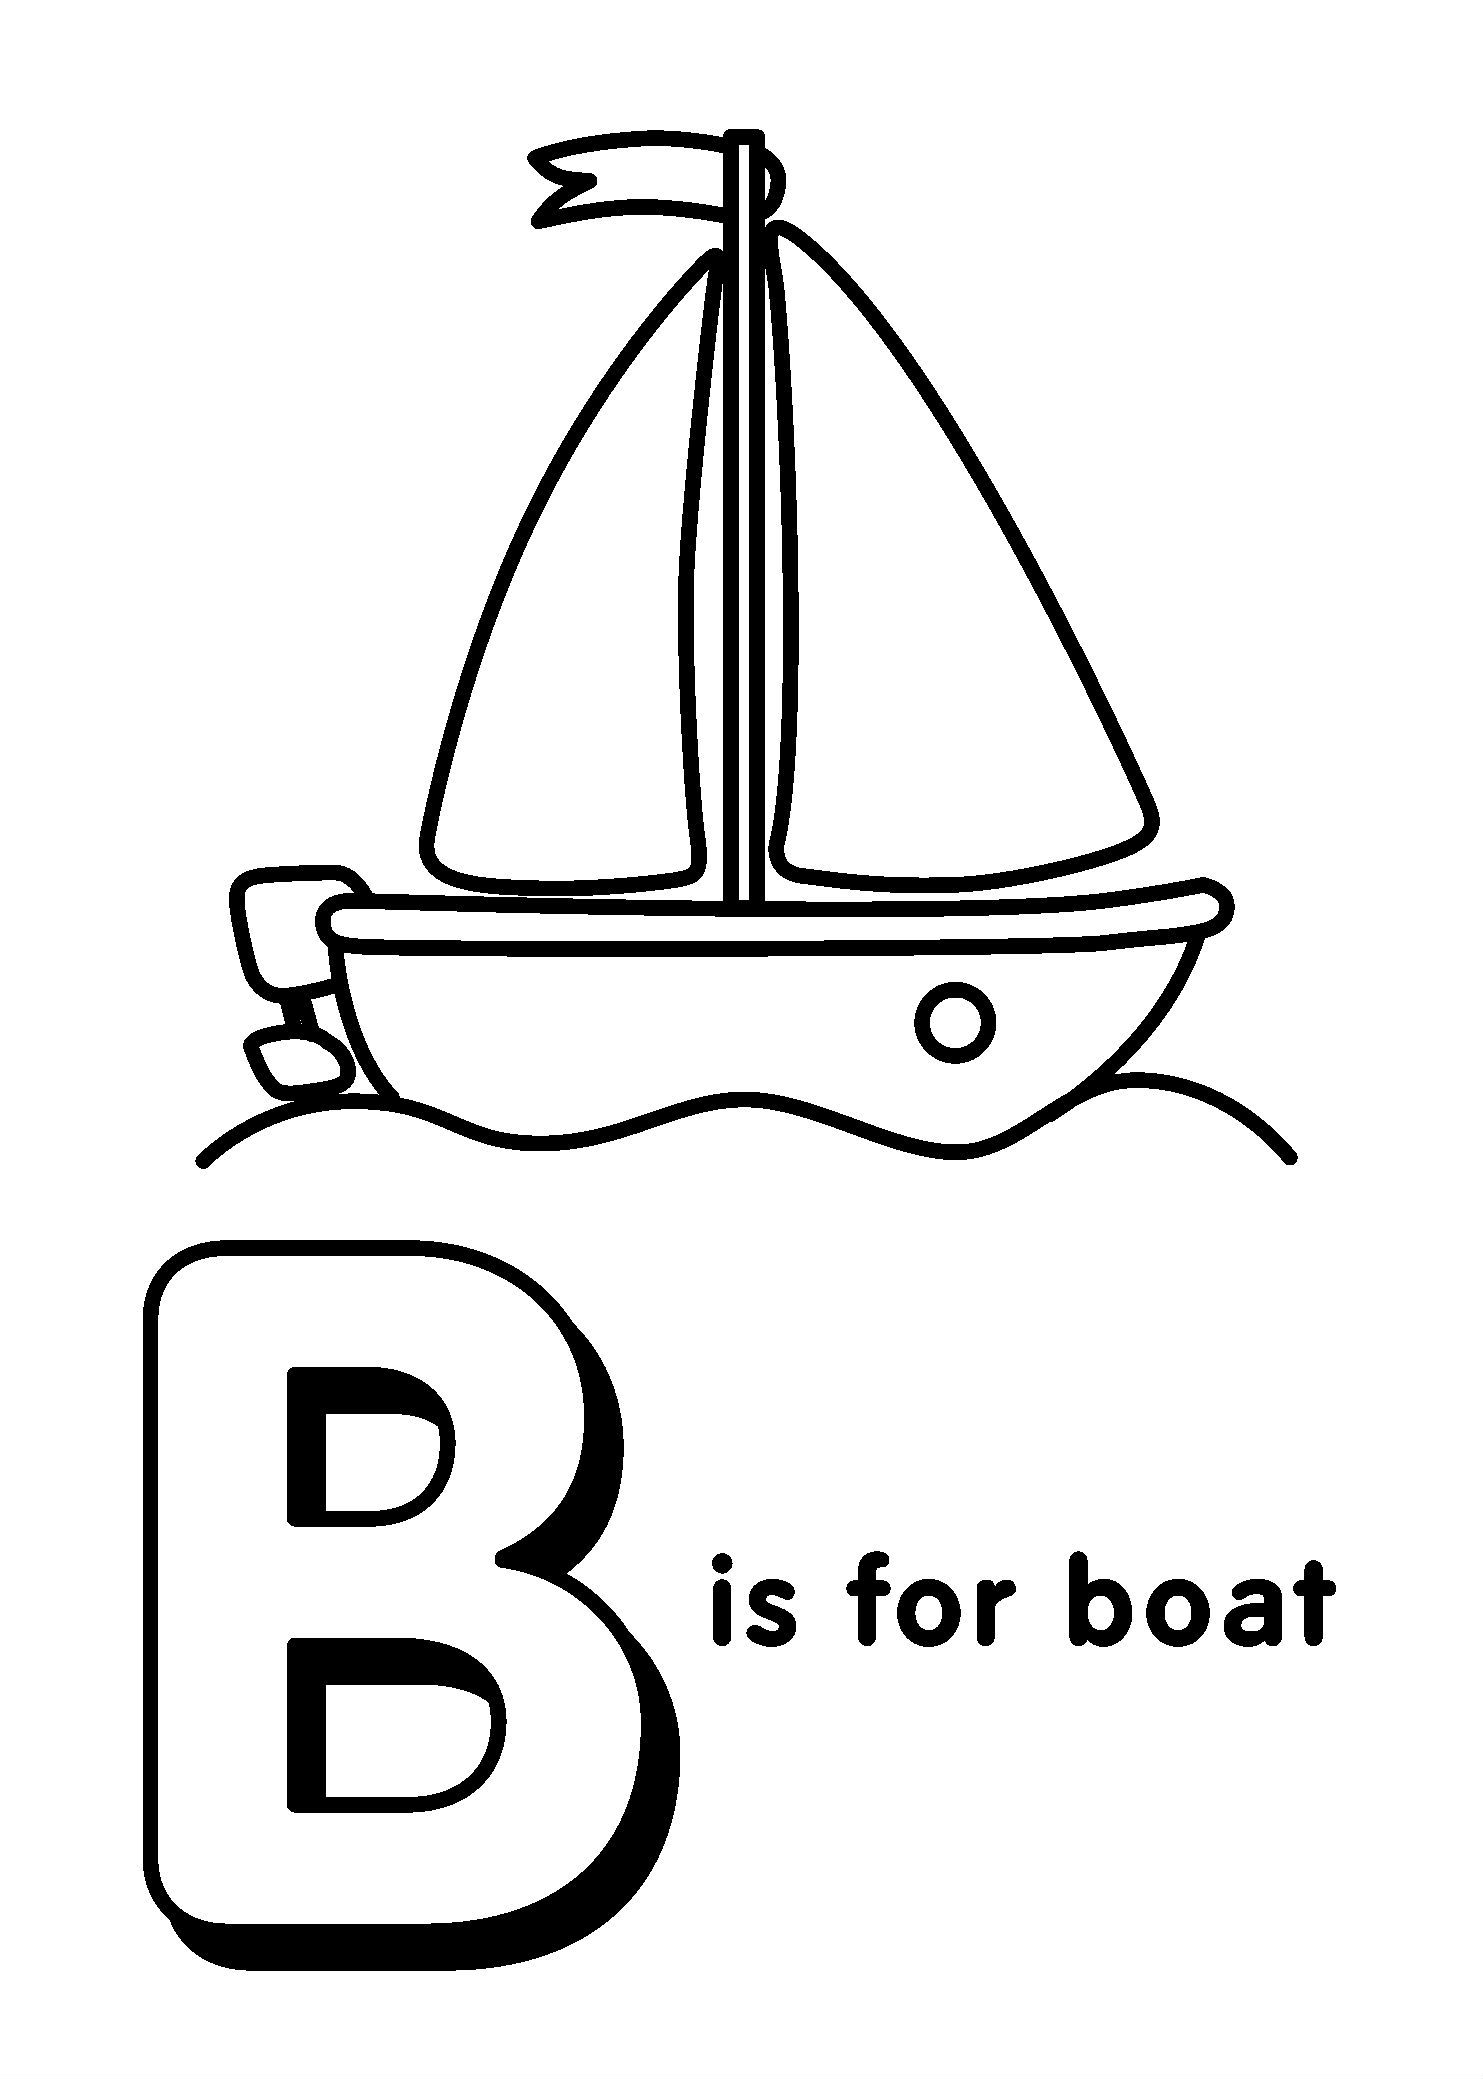 alphabet b coloring pages letter b is for balloon coloring page free printable pages b coloring alphabet